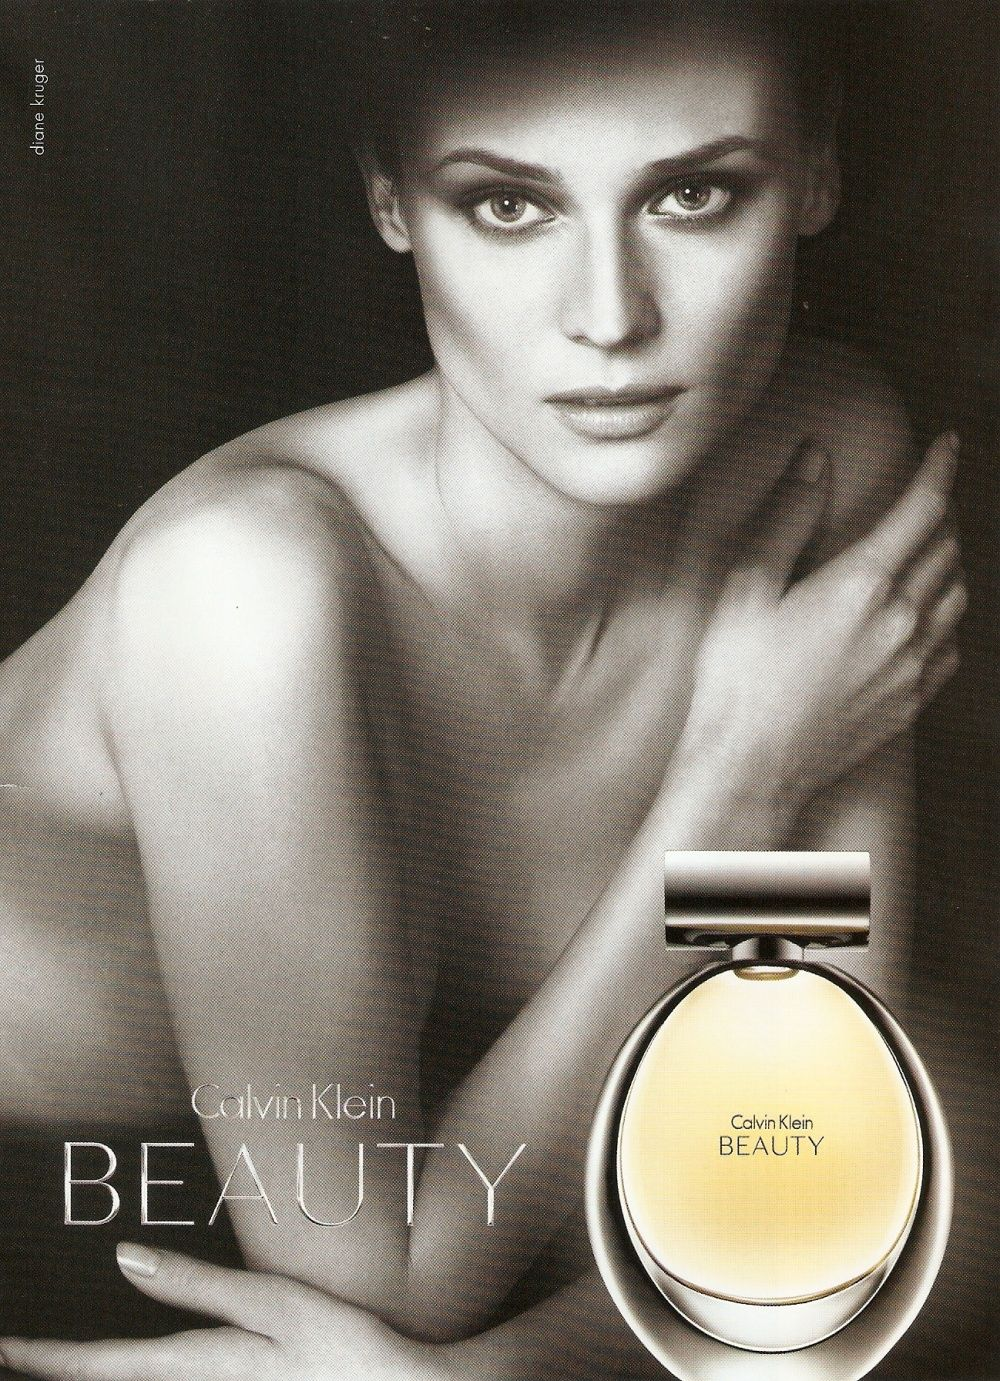 Art8amby S Blog: Calvin Klein Beauty Fragrance 2011 Ad Campaign